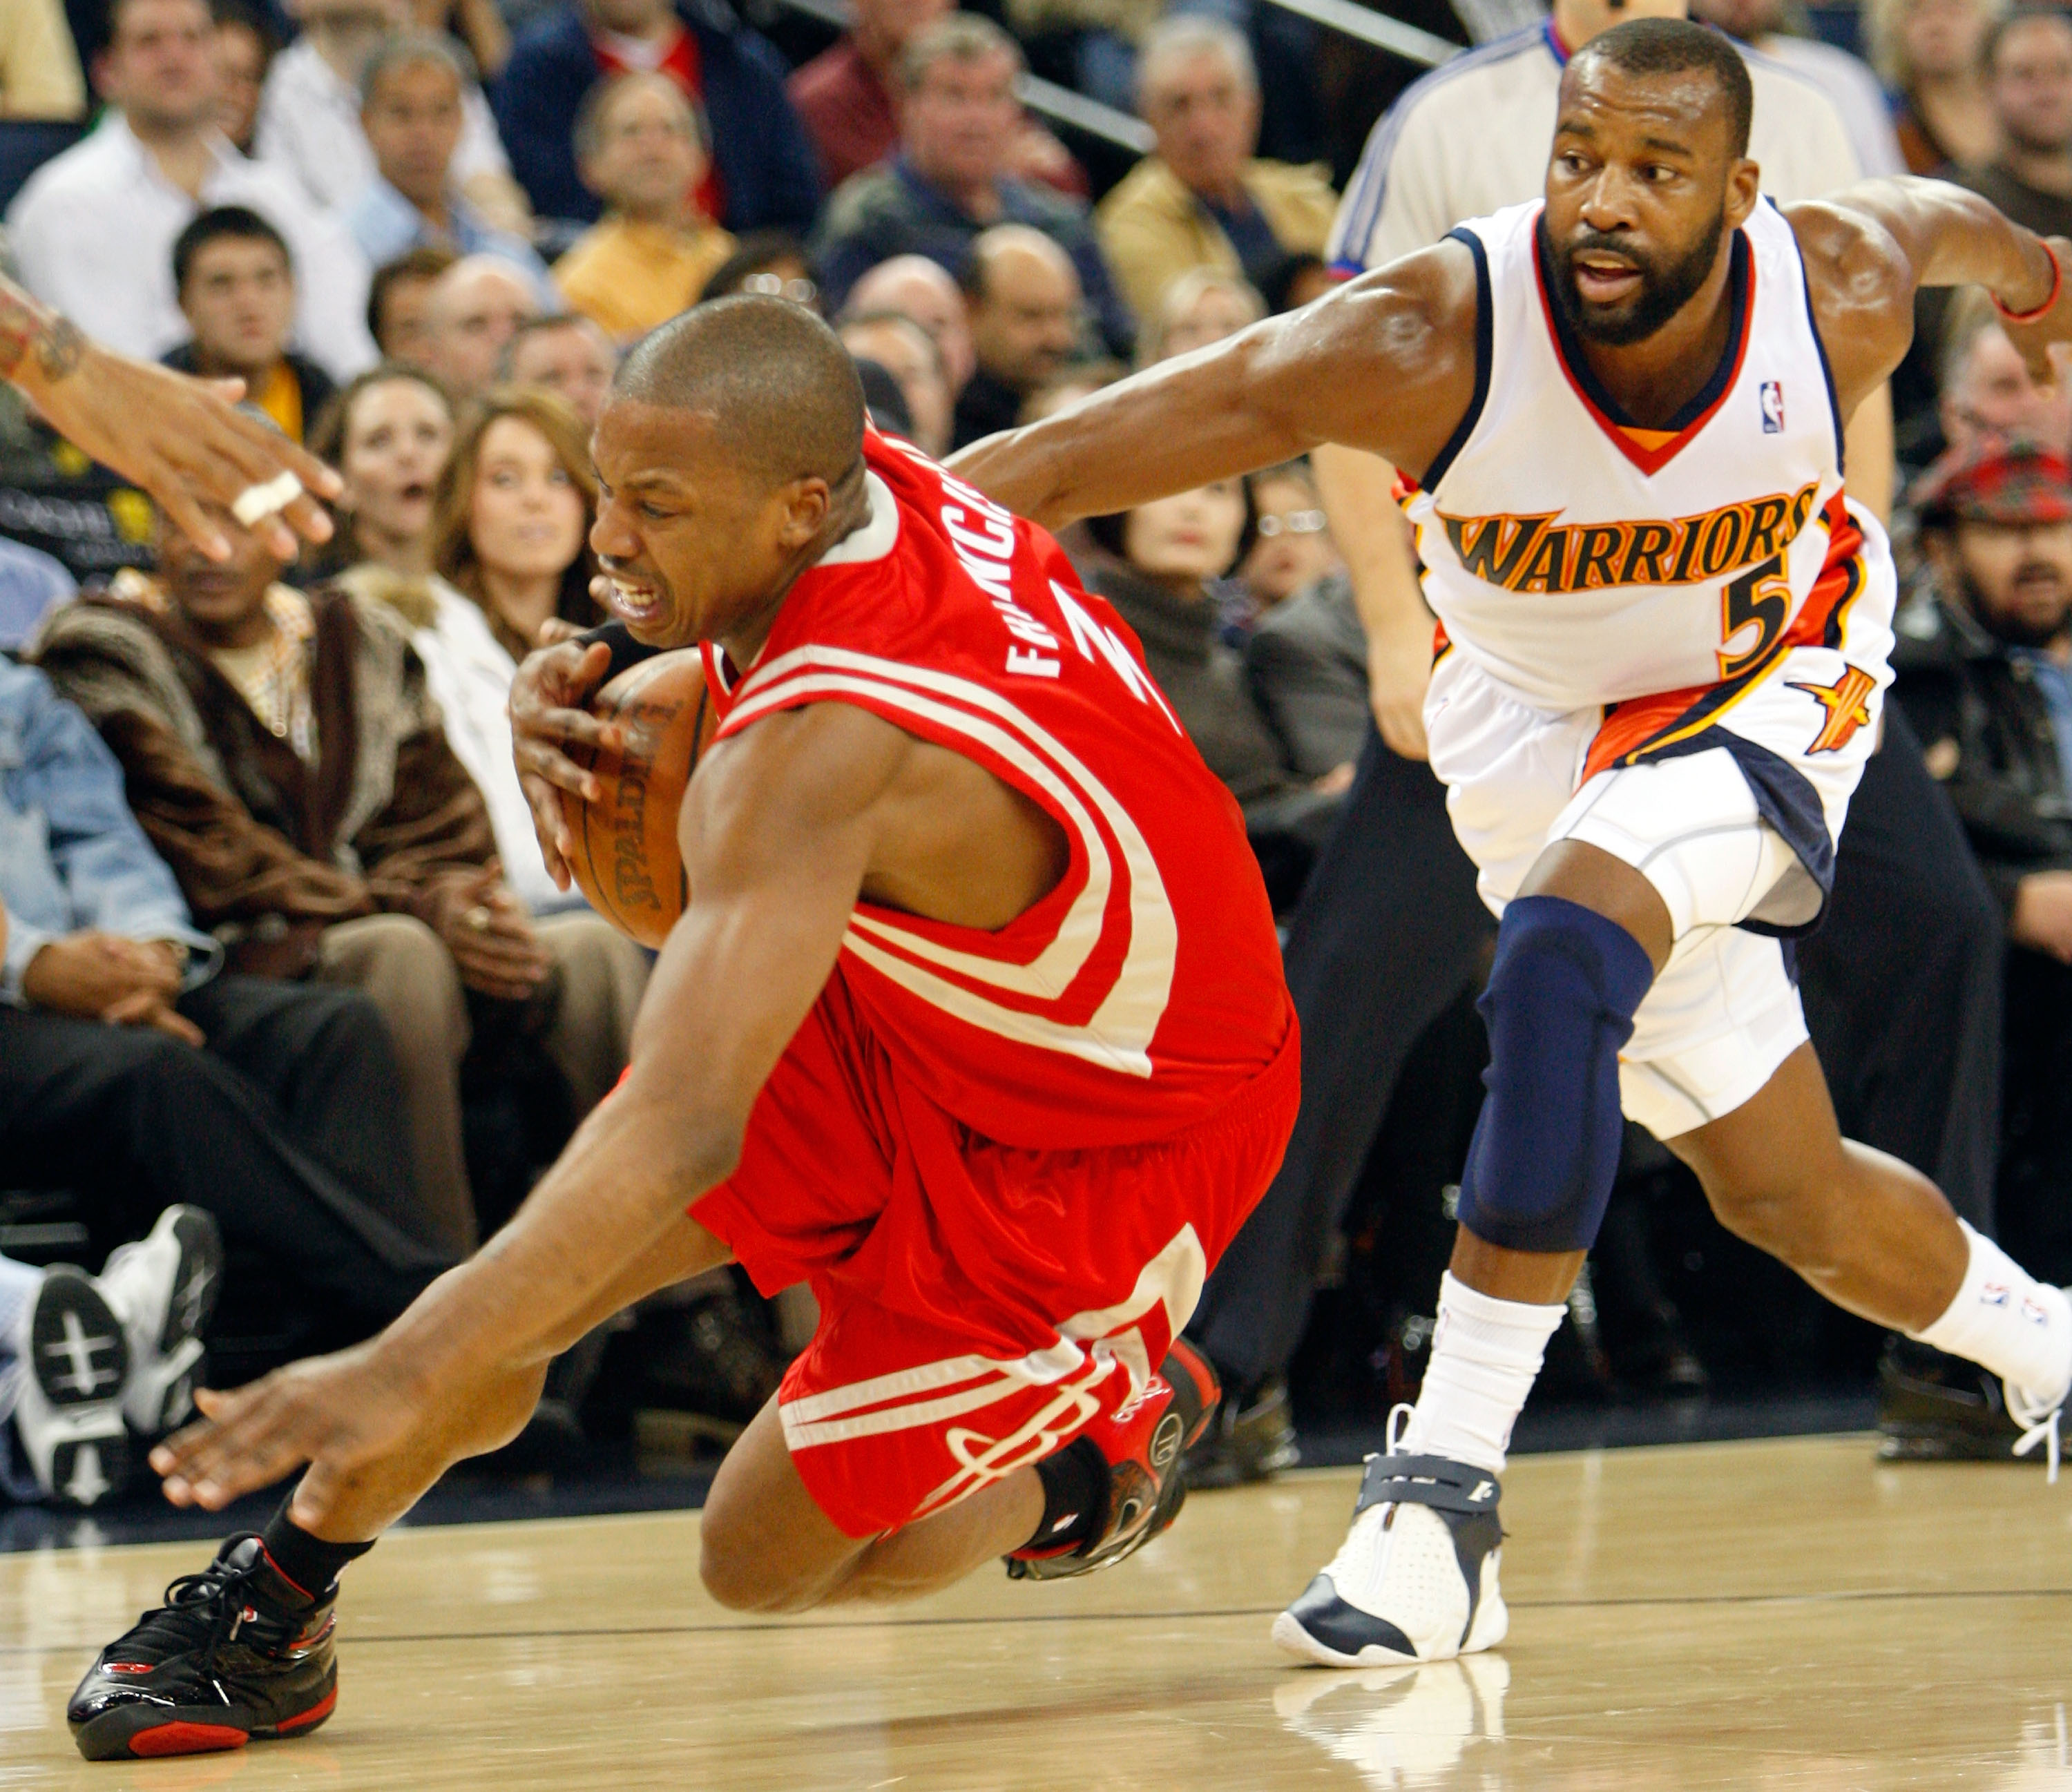 OAKLAND, CA - NOVEMBER 29:  Steve Francis #3 of the Houston Rockets stumbles as Baron Davis #5 of the Golden State Warriors defends during first-half action November 29, 2007 at the Oracle Arena in Oakland, California.  (Photo by Justin Sullivan/Getty Ima